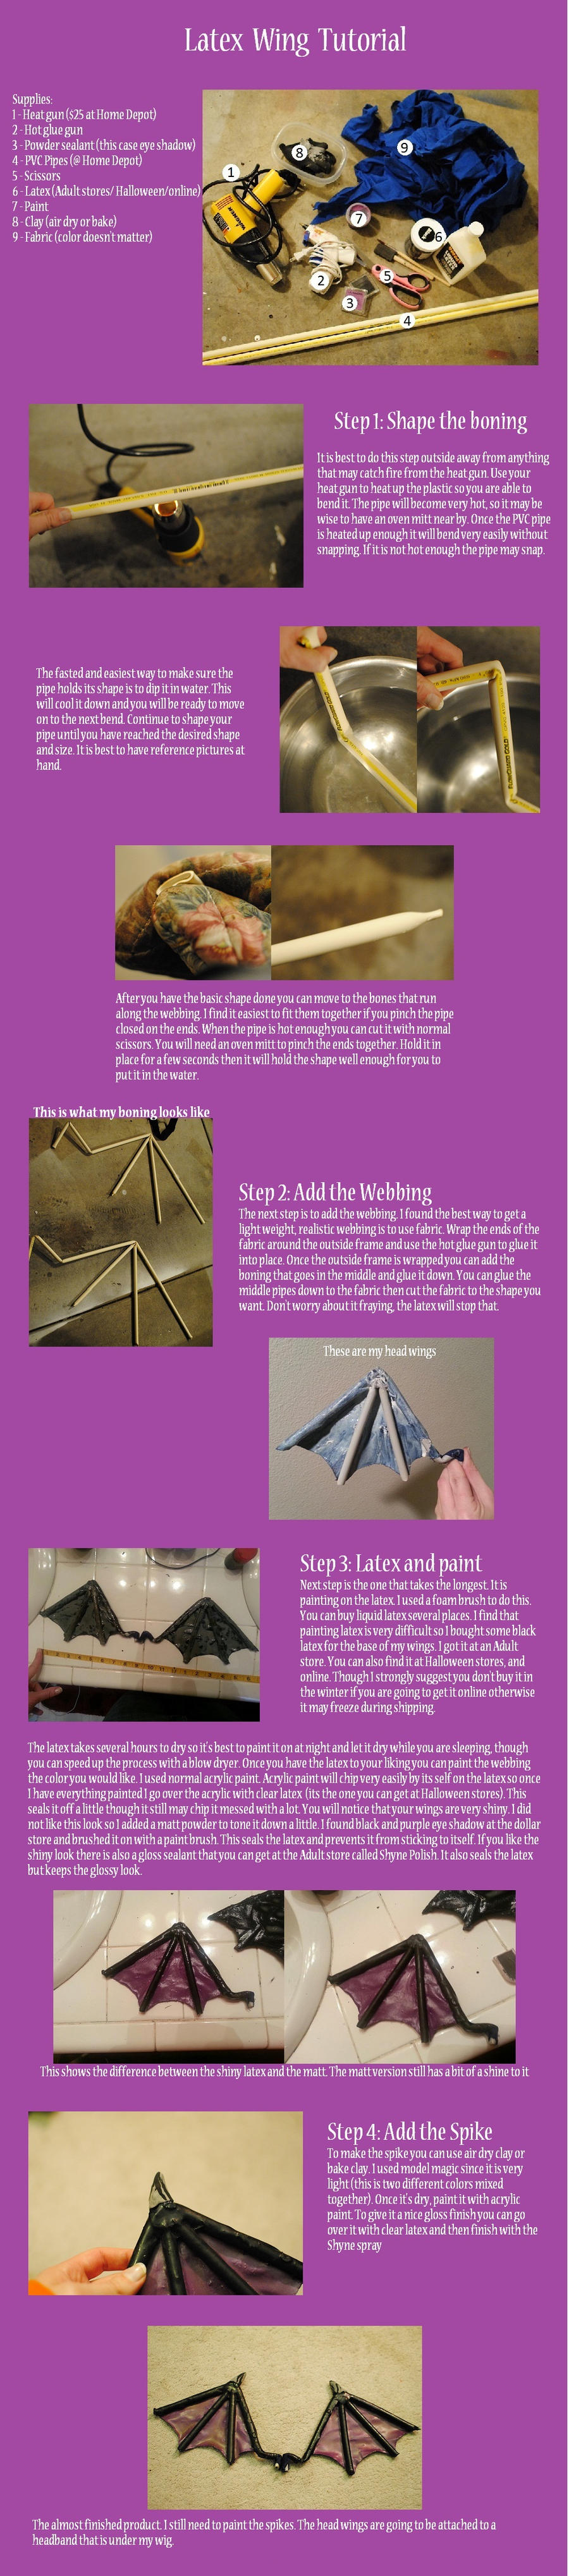 Latex Wing Tutorial by nikkiolie